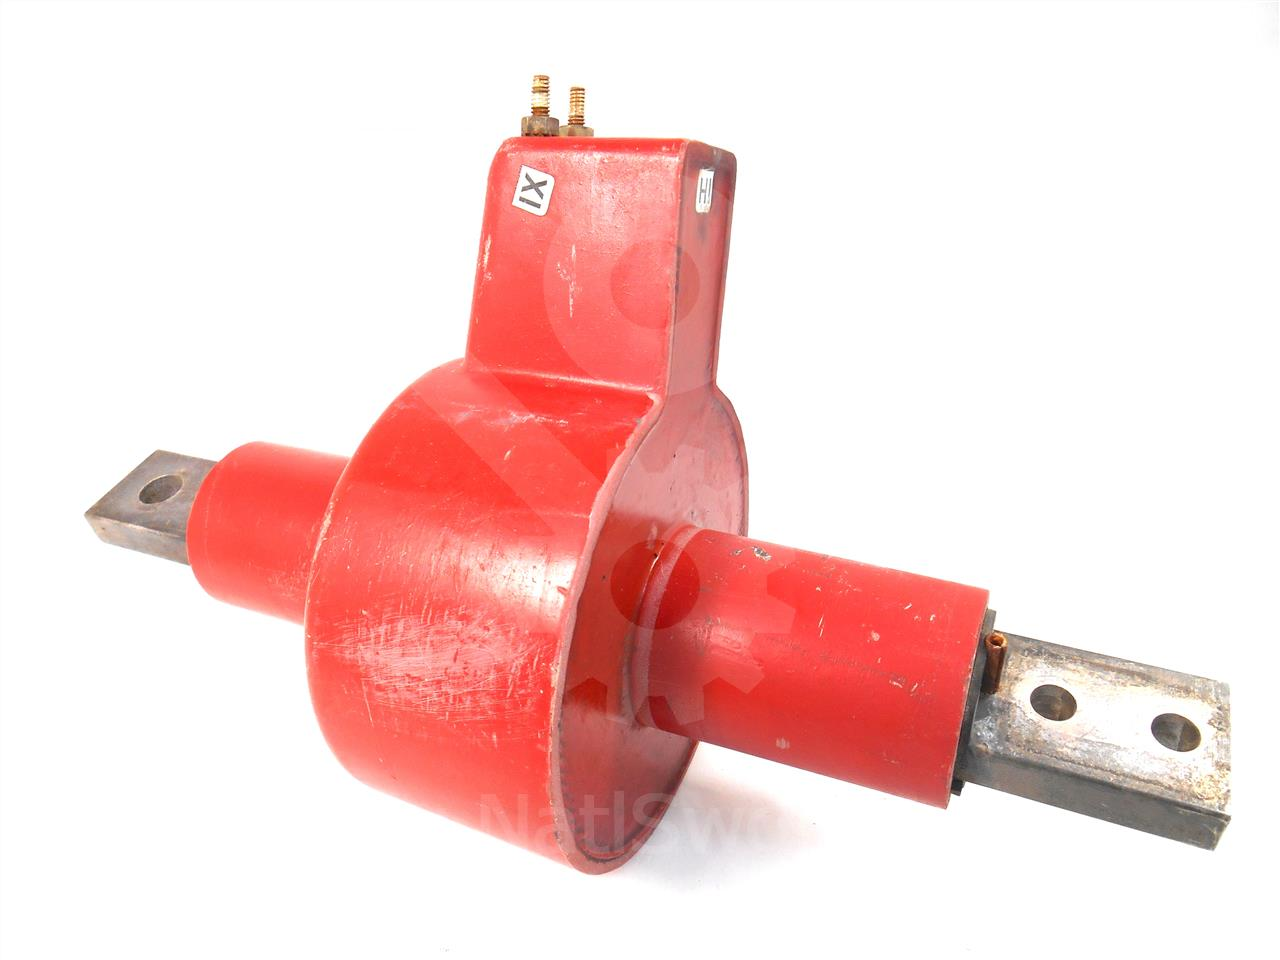 401601-K12 ITE BC-1 CURRENT TRANSFORMER 1200:5 FOR 15HK SWITCHGEAR, BAR TYPE